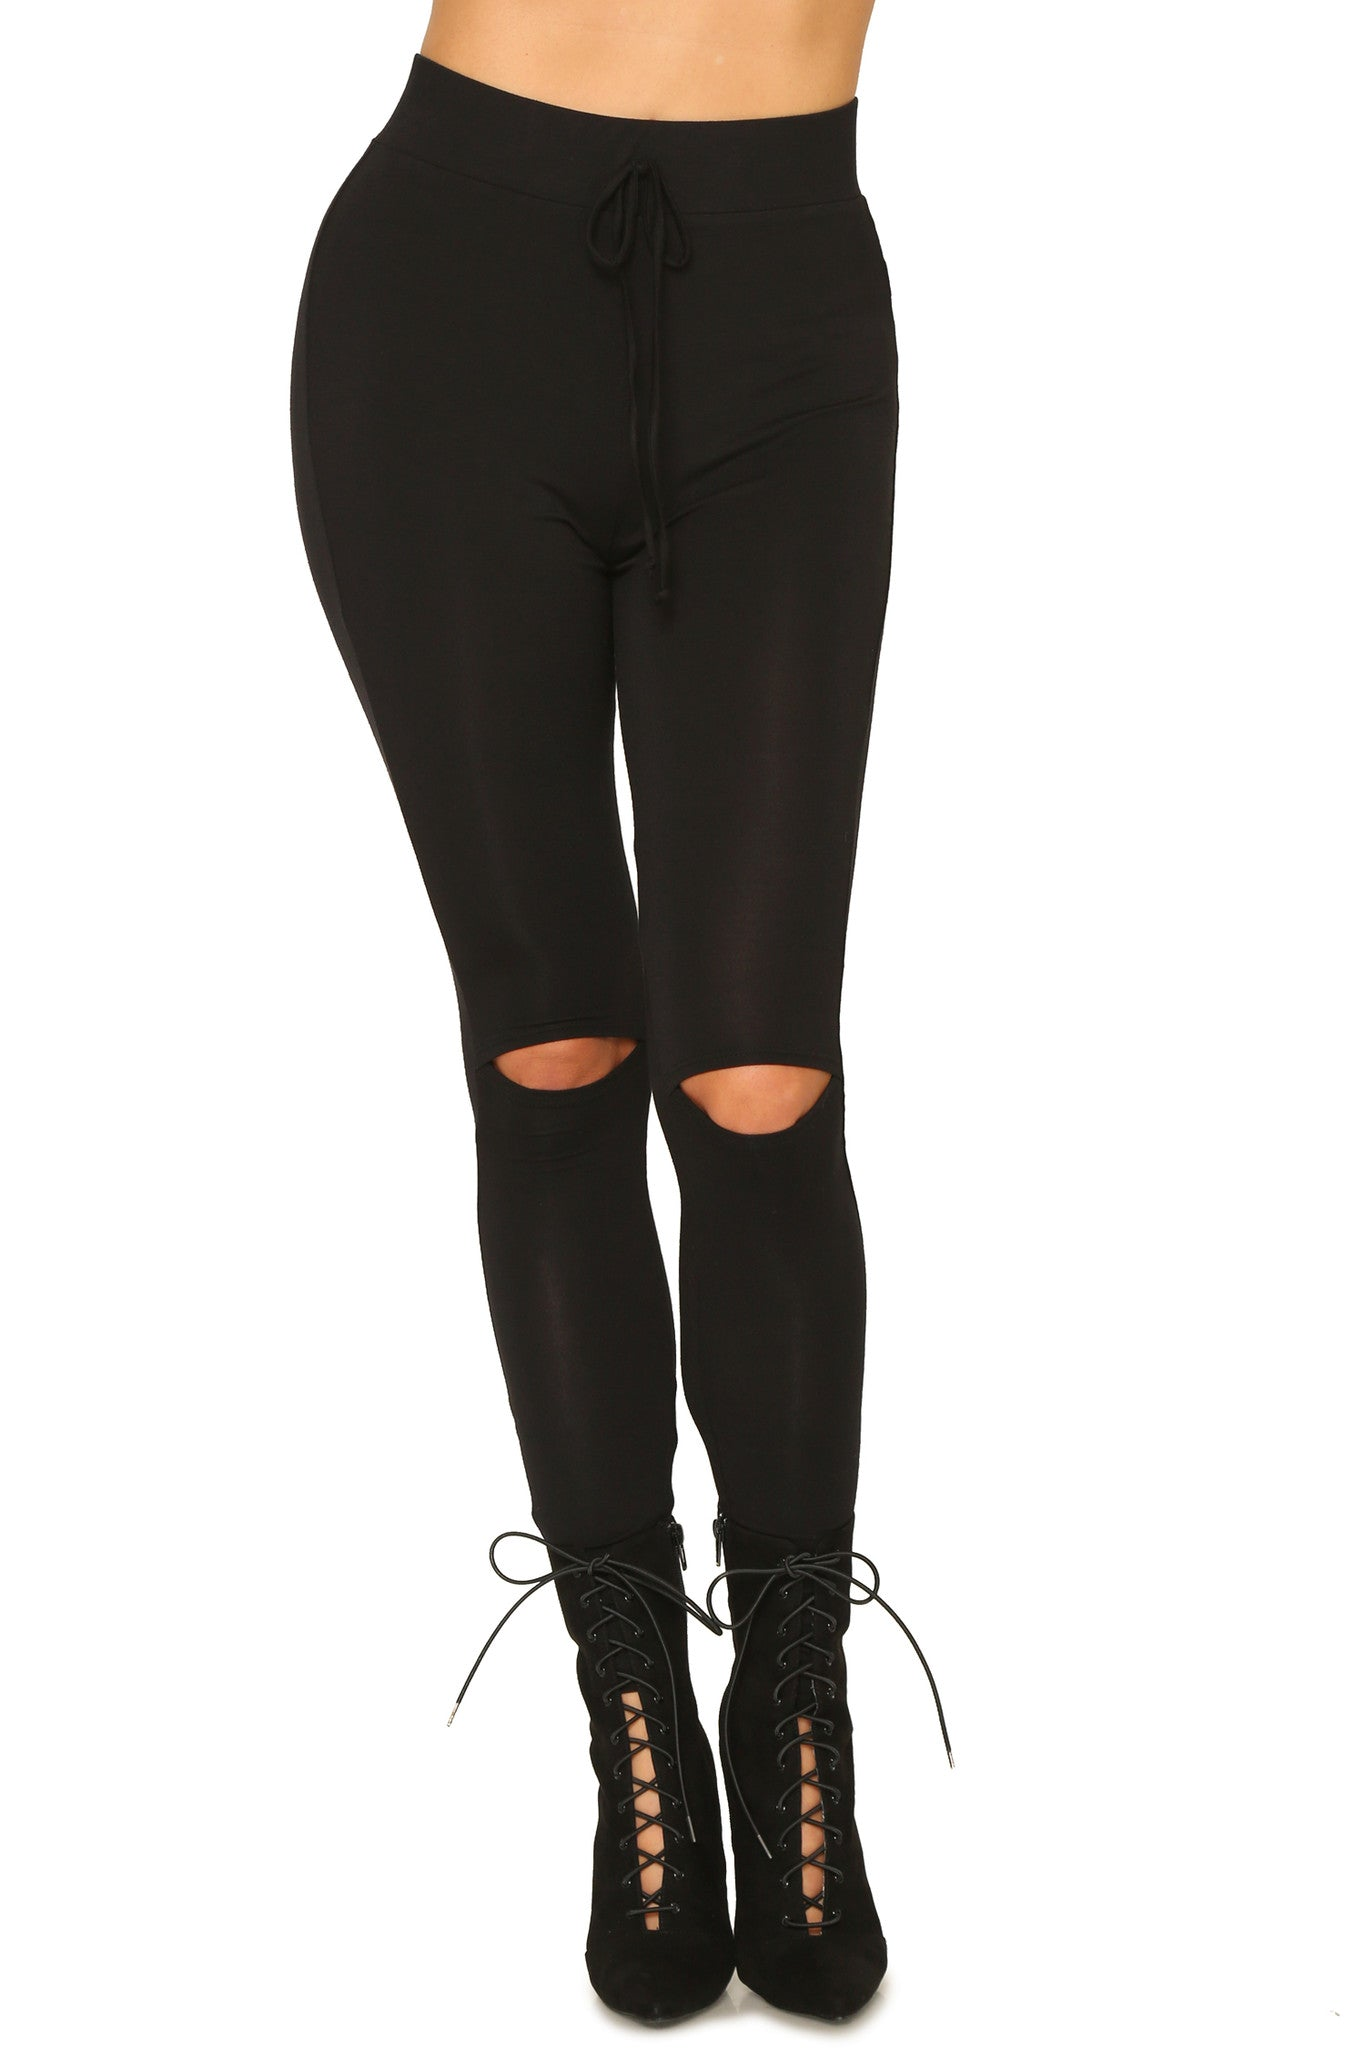 SIENNA LEGGINGS - Glam Envy - 1